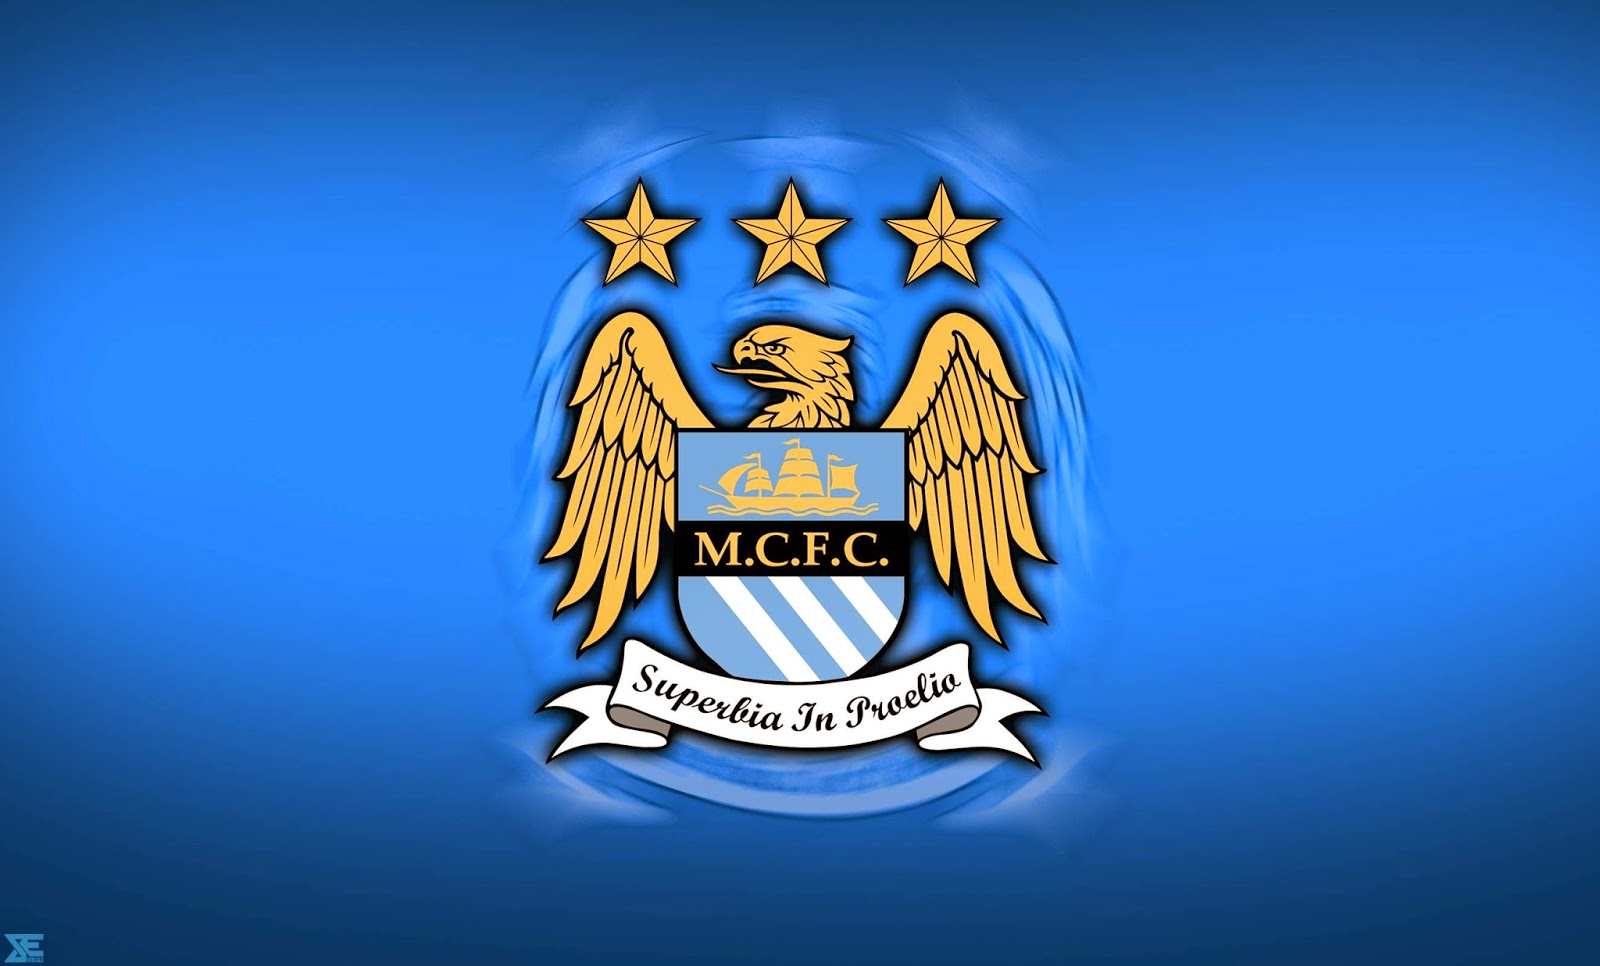 Man City: Manchester City Football Club Wallpaper